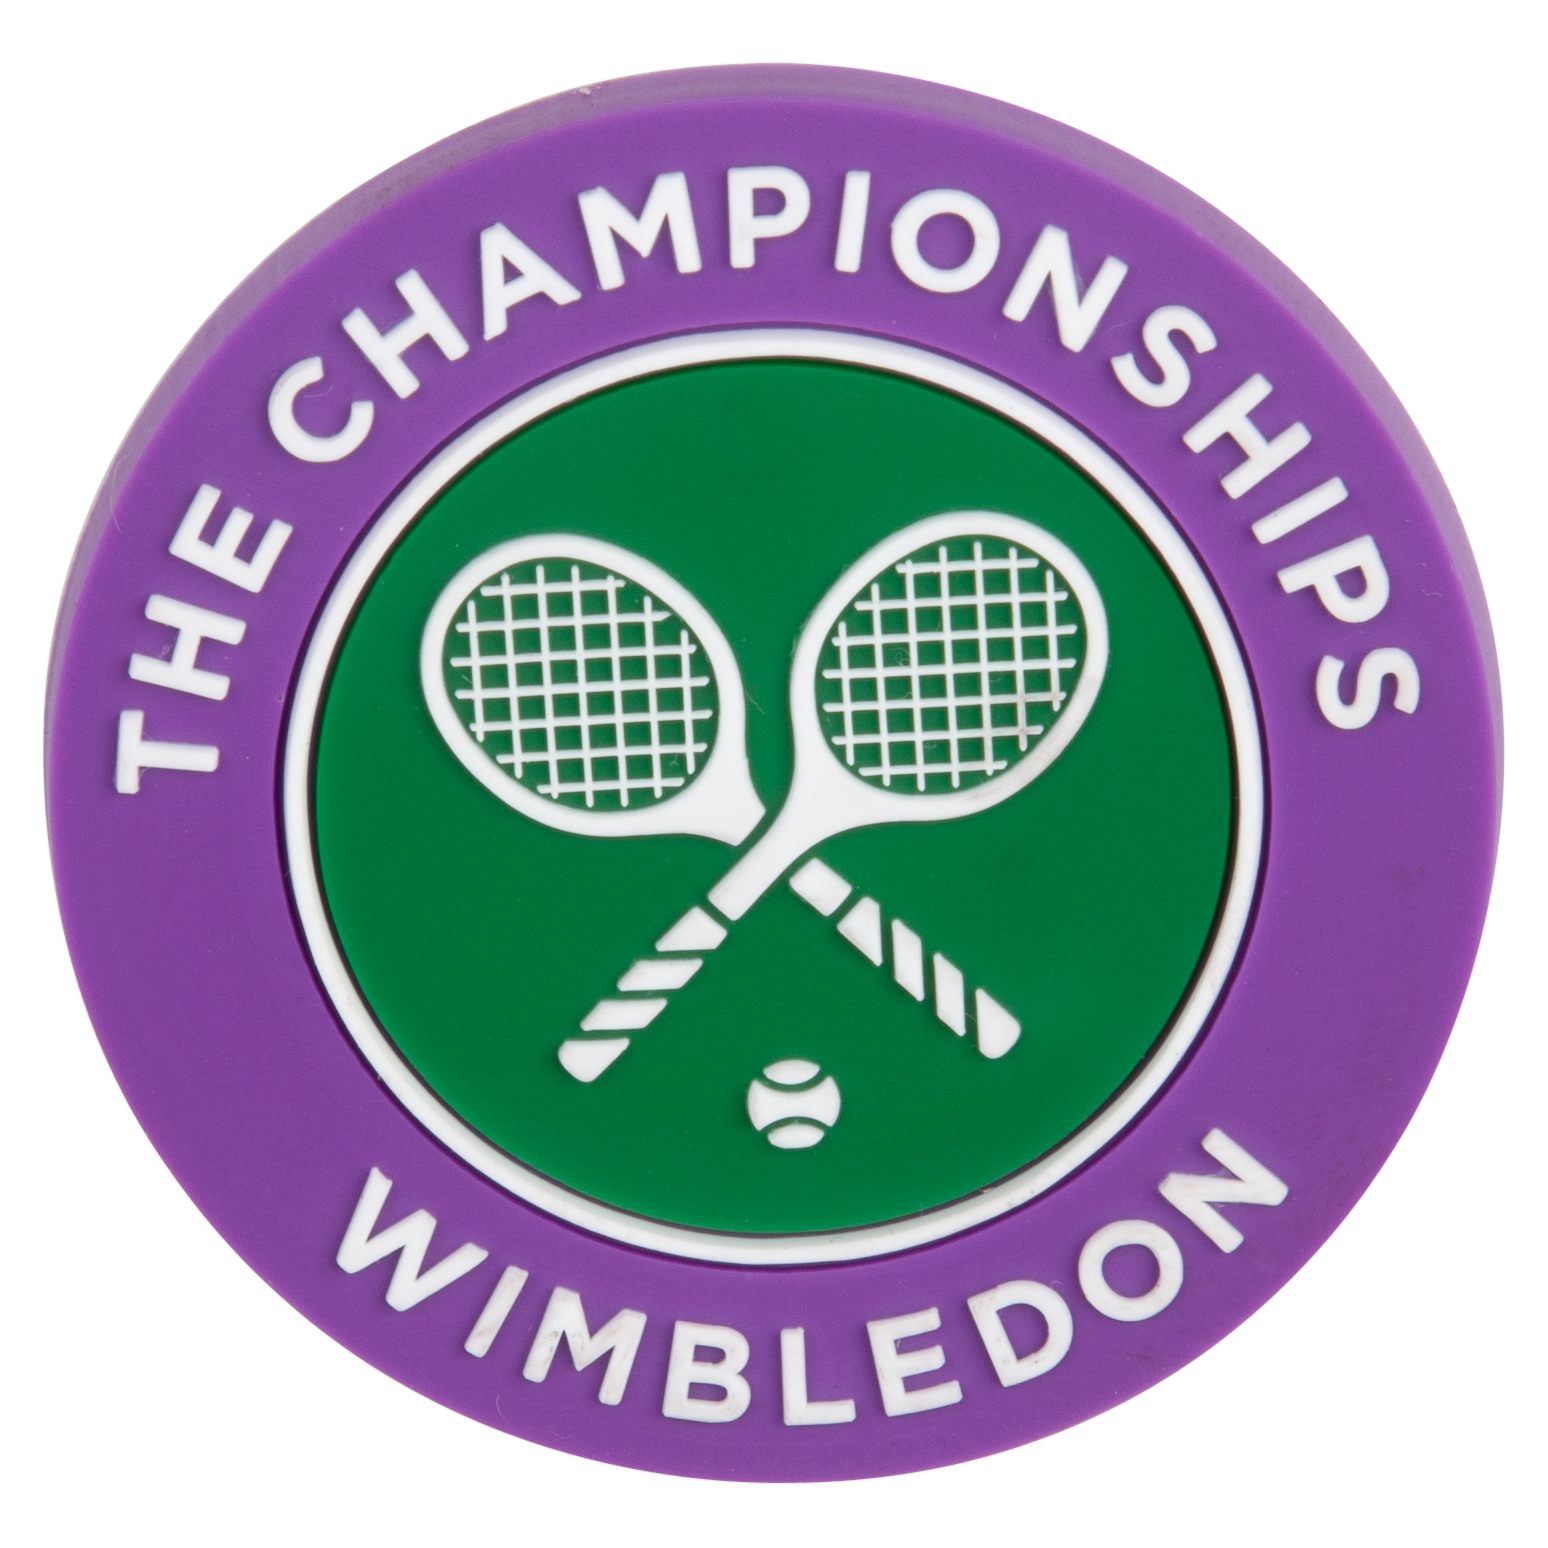 Wimbledon Crossed Rackets Magnet